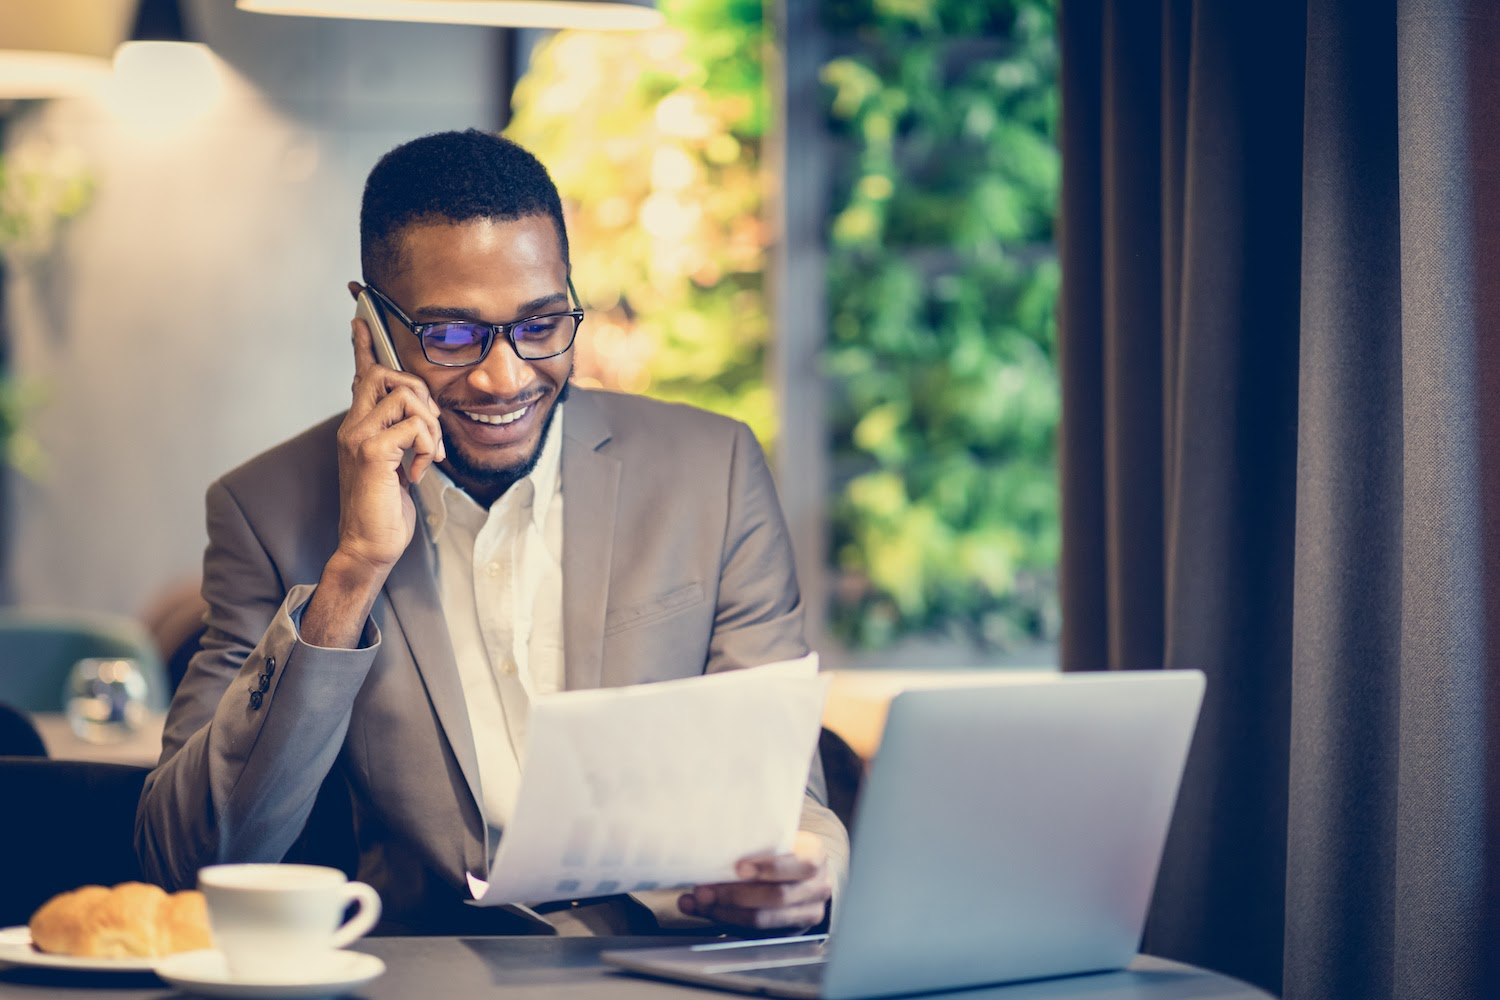 Restaurant accounting: Man talks on phone, smiling, while holding a piece of paper